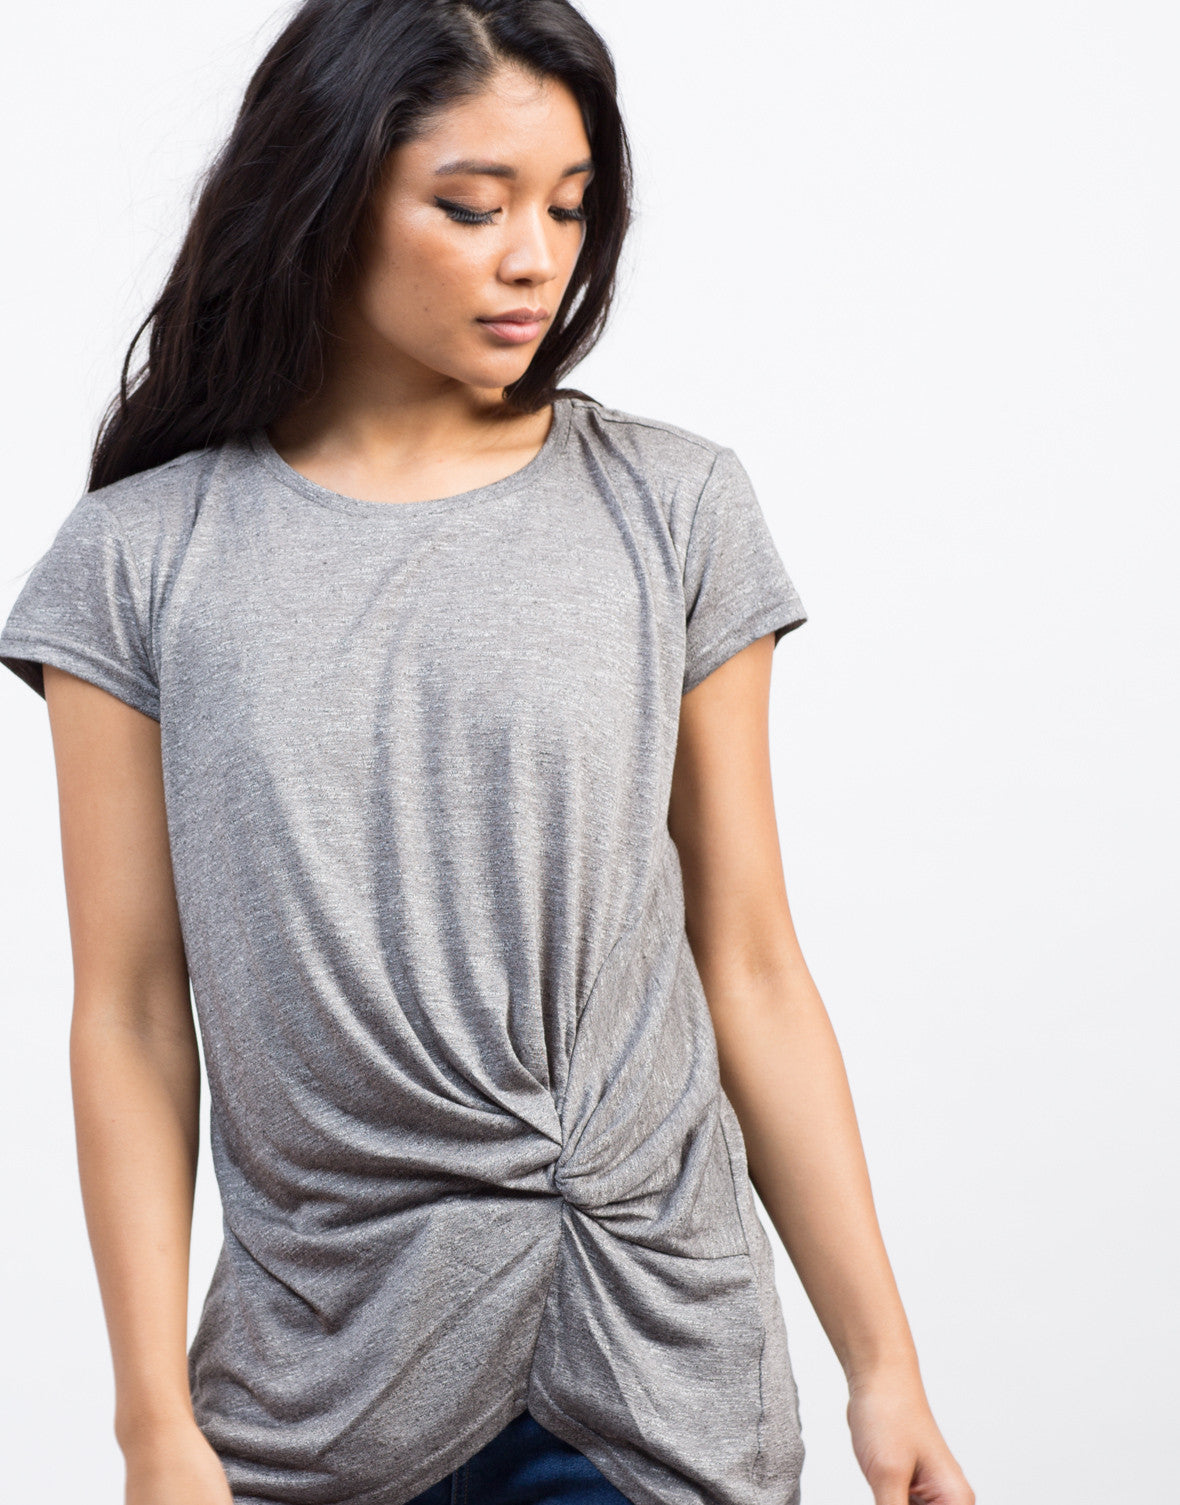 Detail of Knotted Tunic Tee